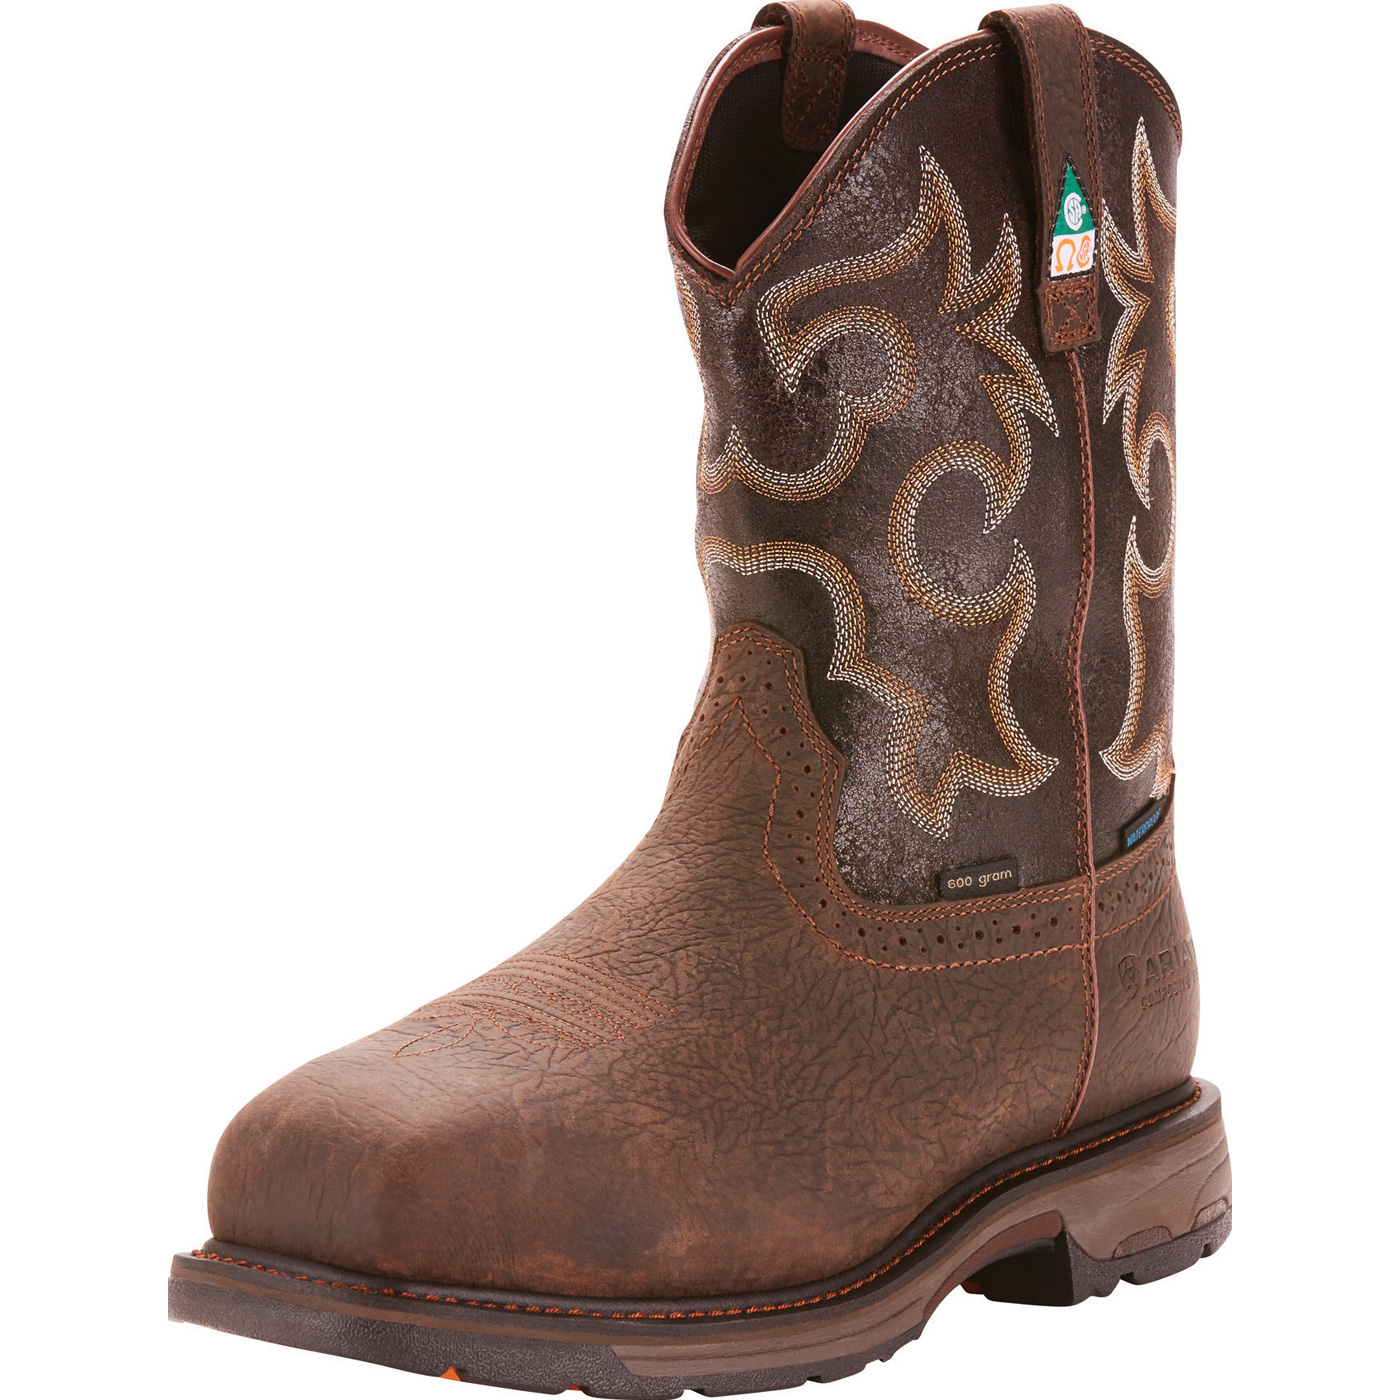 8c8153b74 Ariat WorkHog Wide Square Men's 11 inch Composite Toe CSA Puncture  Resistant Waterproof 600g Insulated Western Work BootAriat WorkHog Wide  Square Men's 11 ...